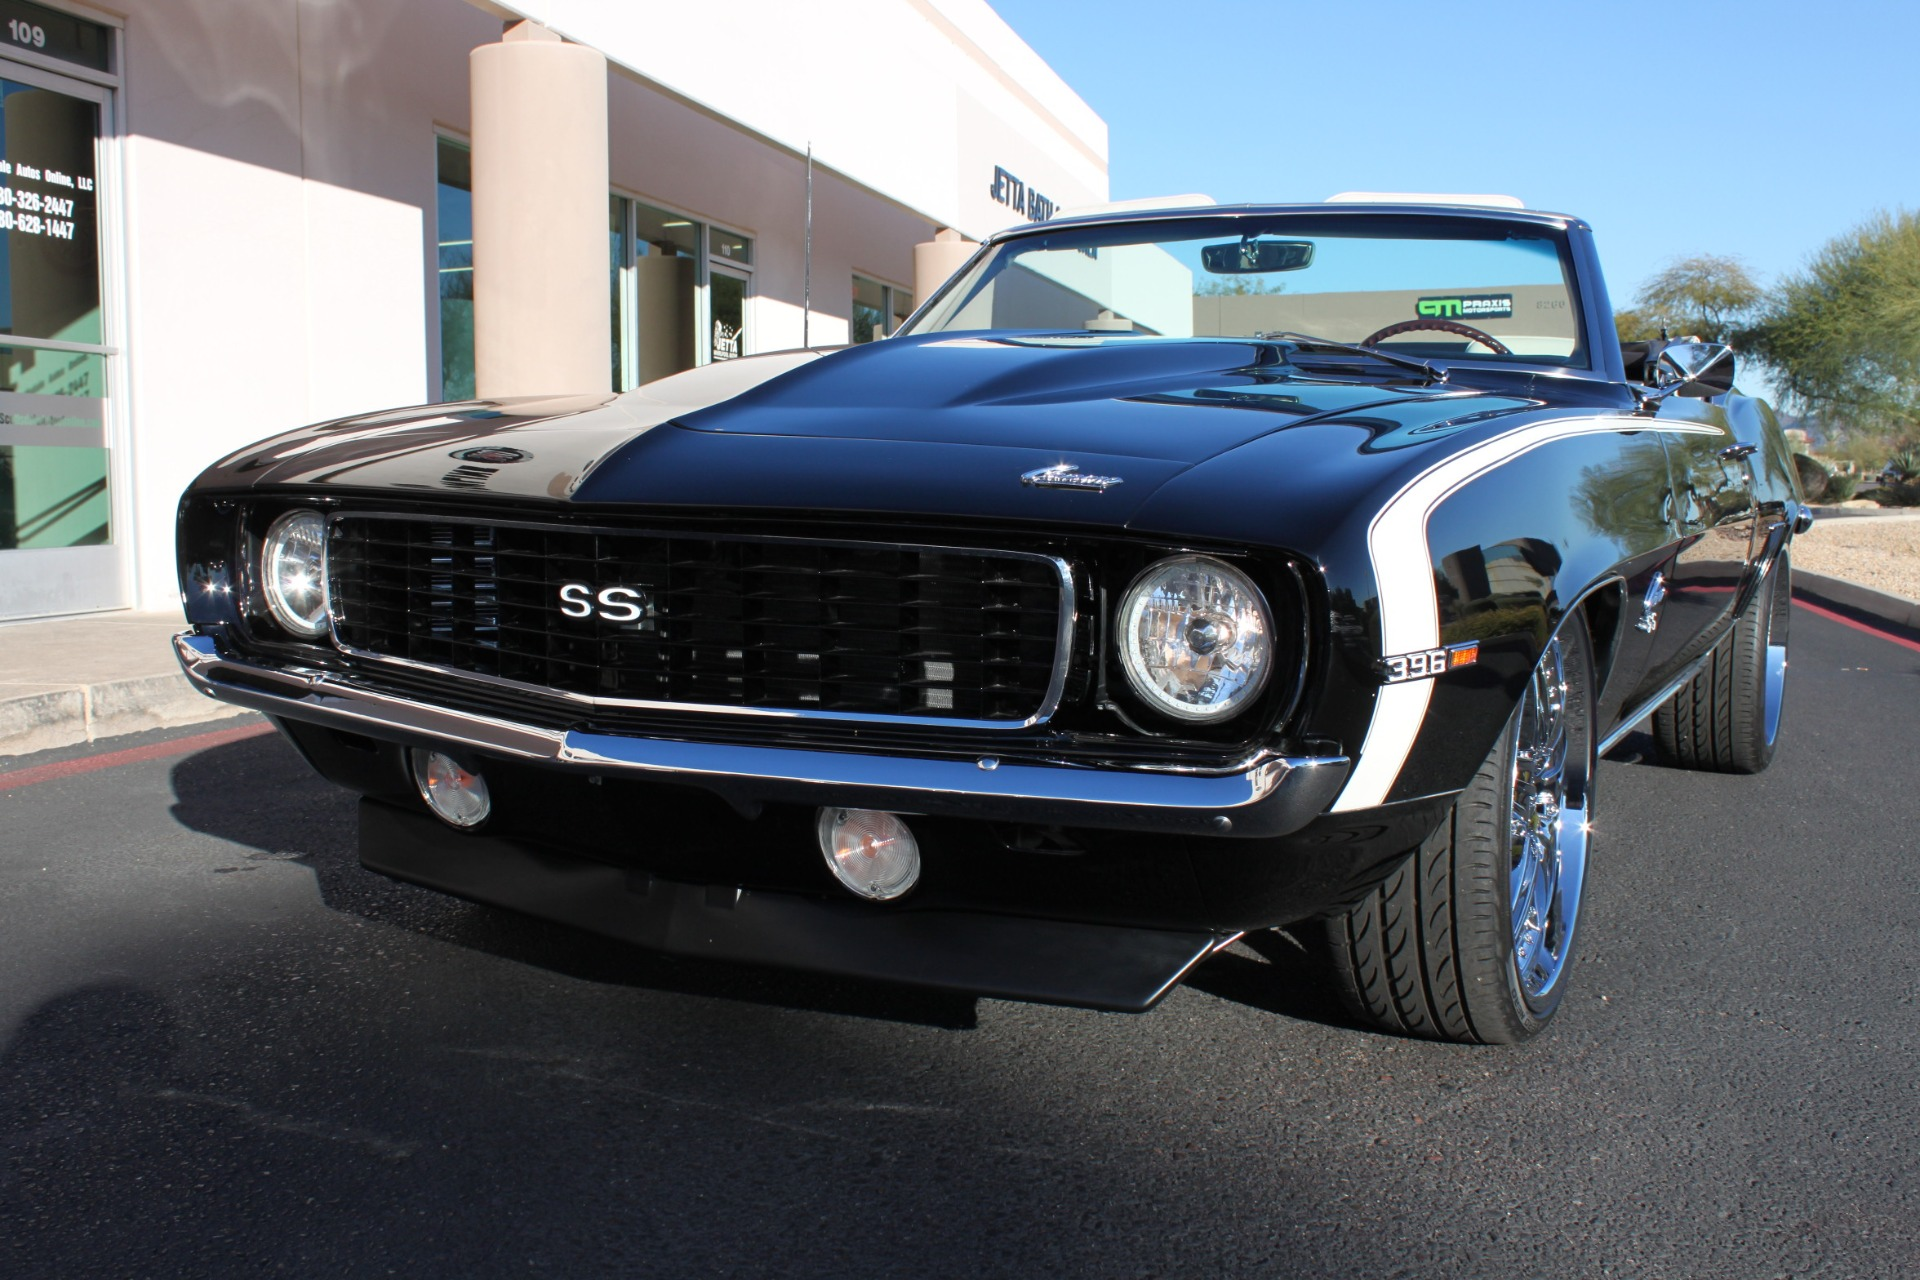 Used-1969-Chevrolet-Camaro-SS/RS-Convertible-Dodge